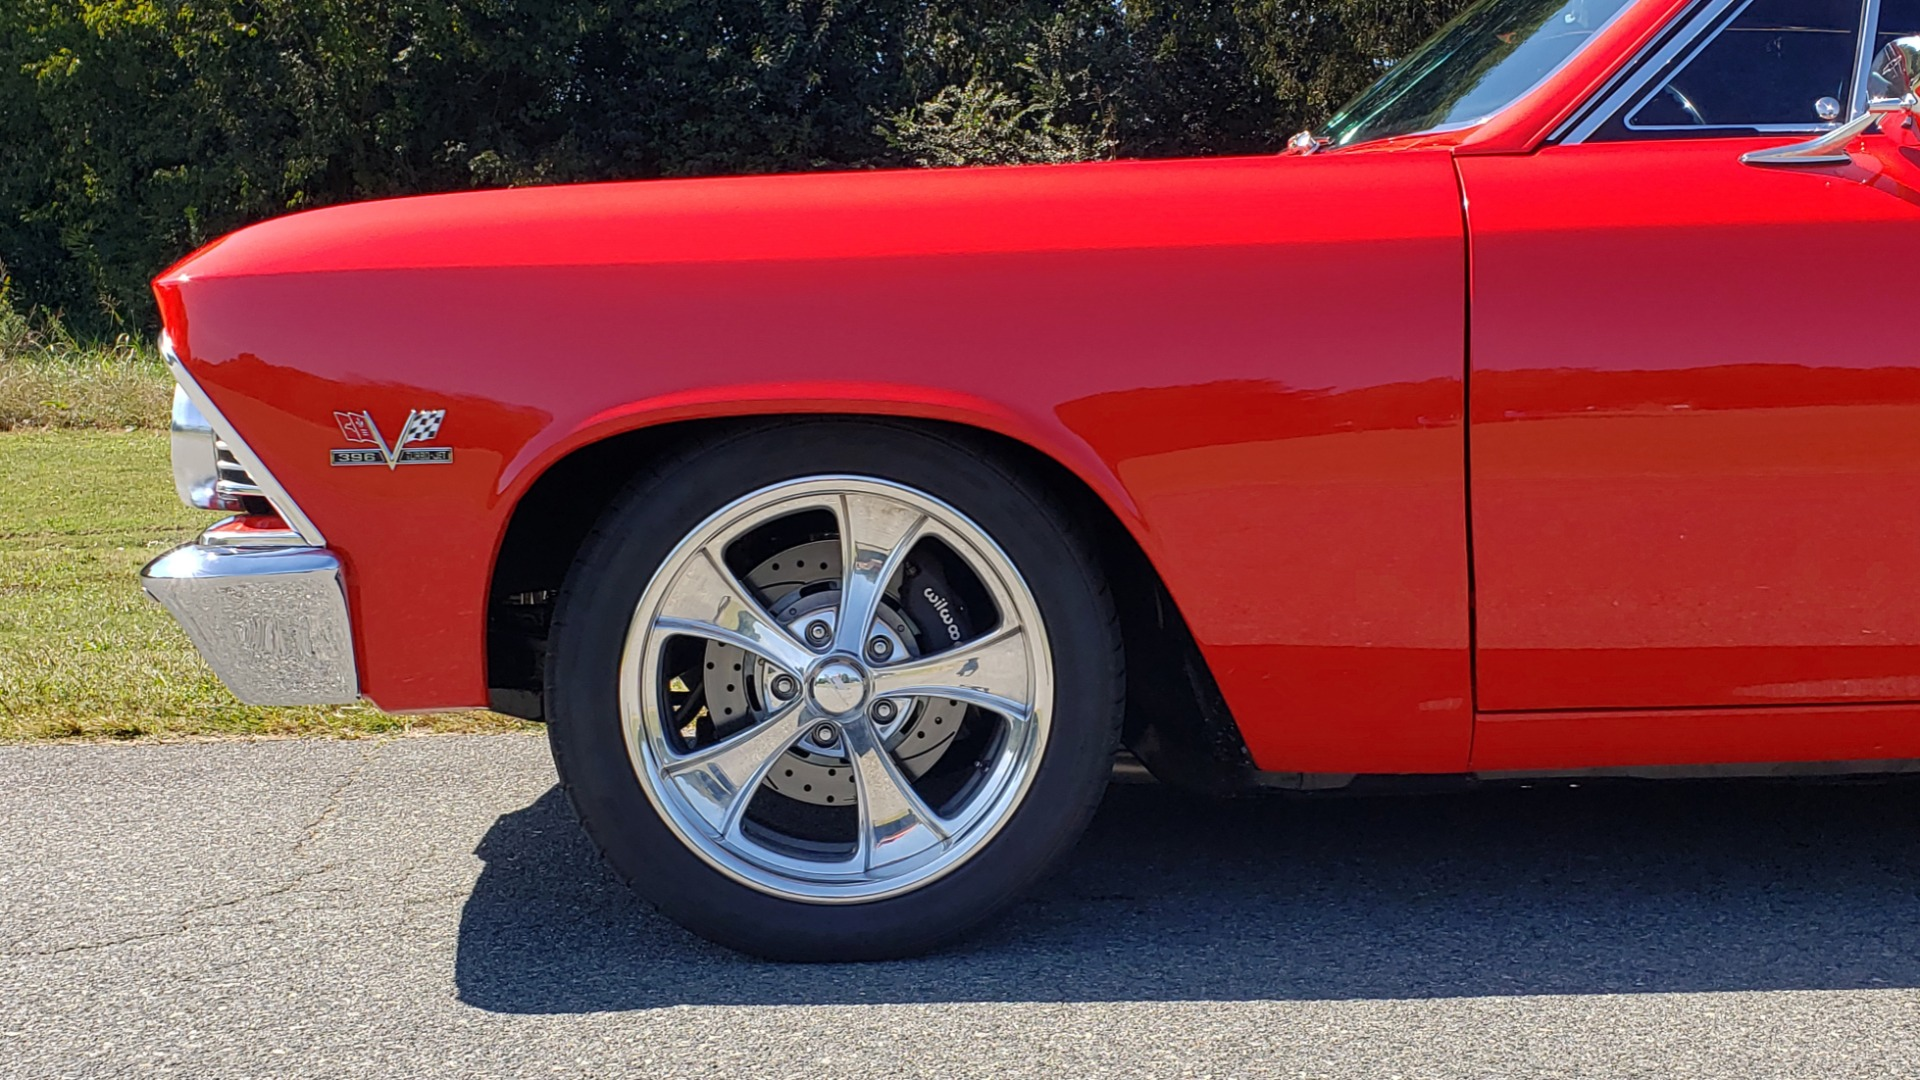 Used 1966 Chevrolet CHEVELLE SS 396 CUSTOM RESTO-MOD / 4-SPEED MANUAL / 12-BOLT REAR for sale $79,999 at Formula Imports in Charlotte NC 28227 88